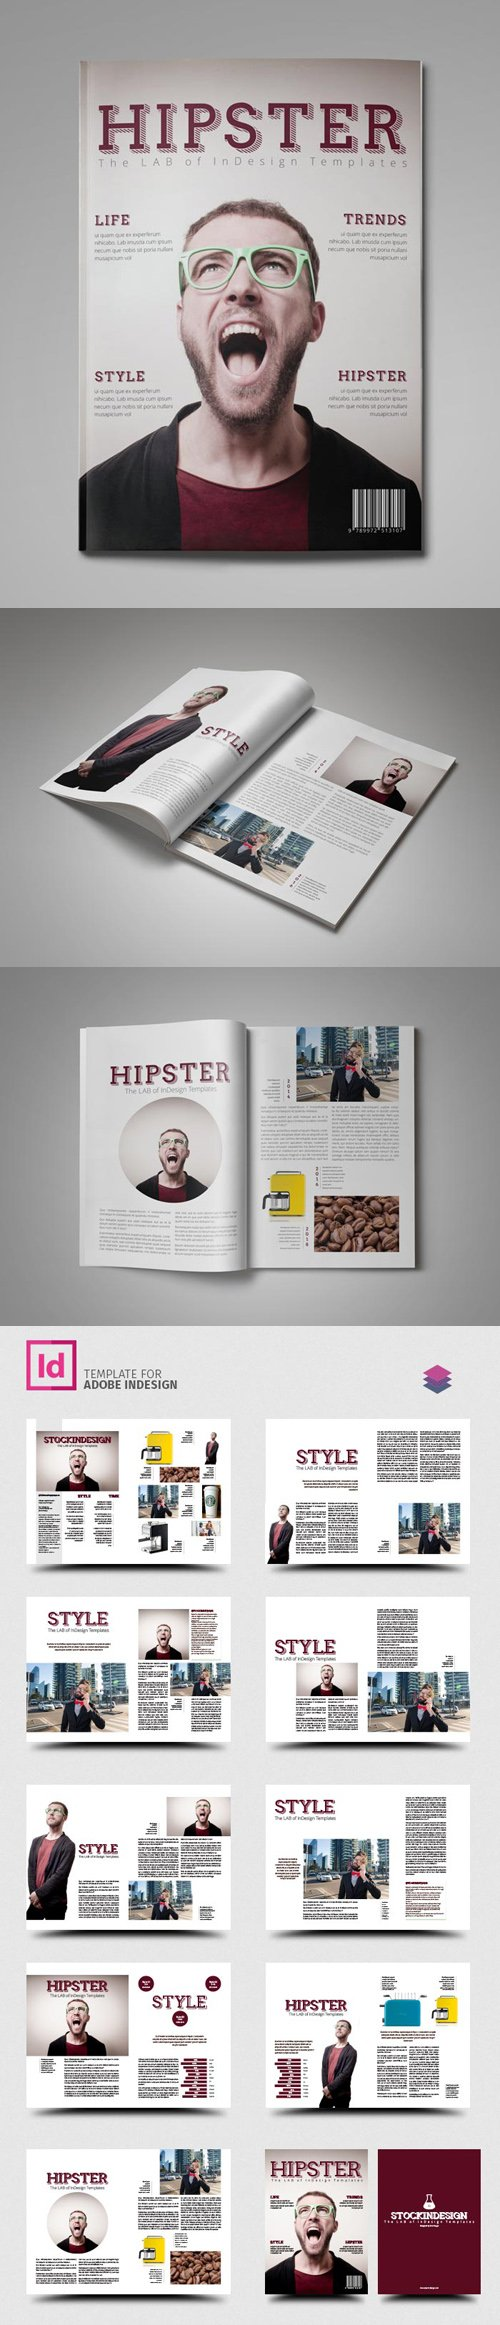 Hipster - PRO Magazine Indesign Template [IDML]